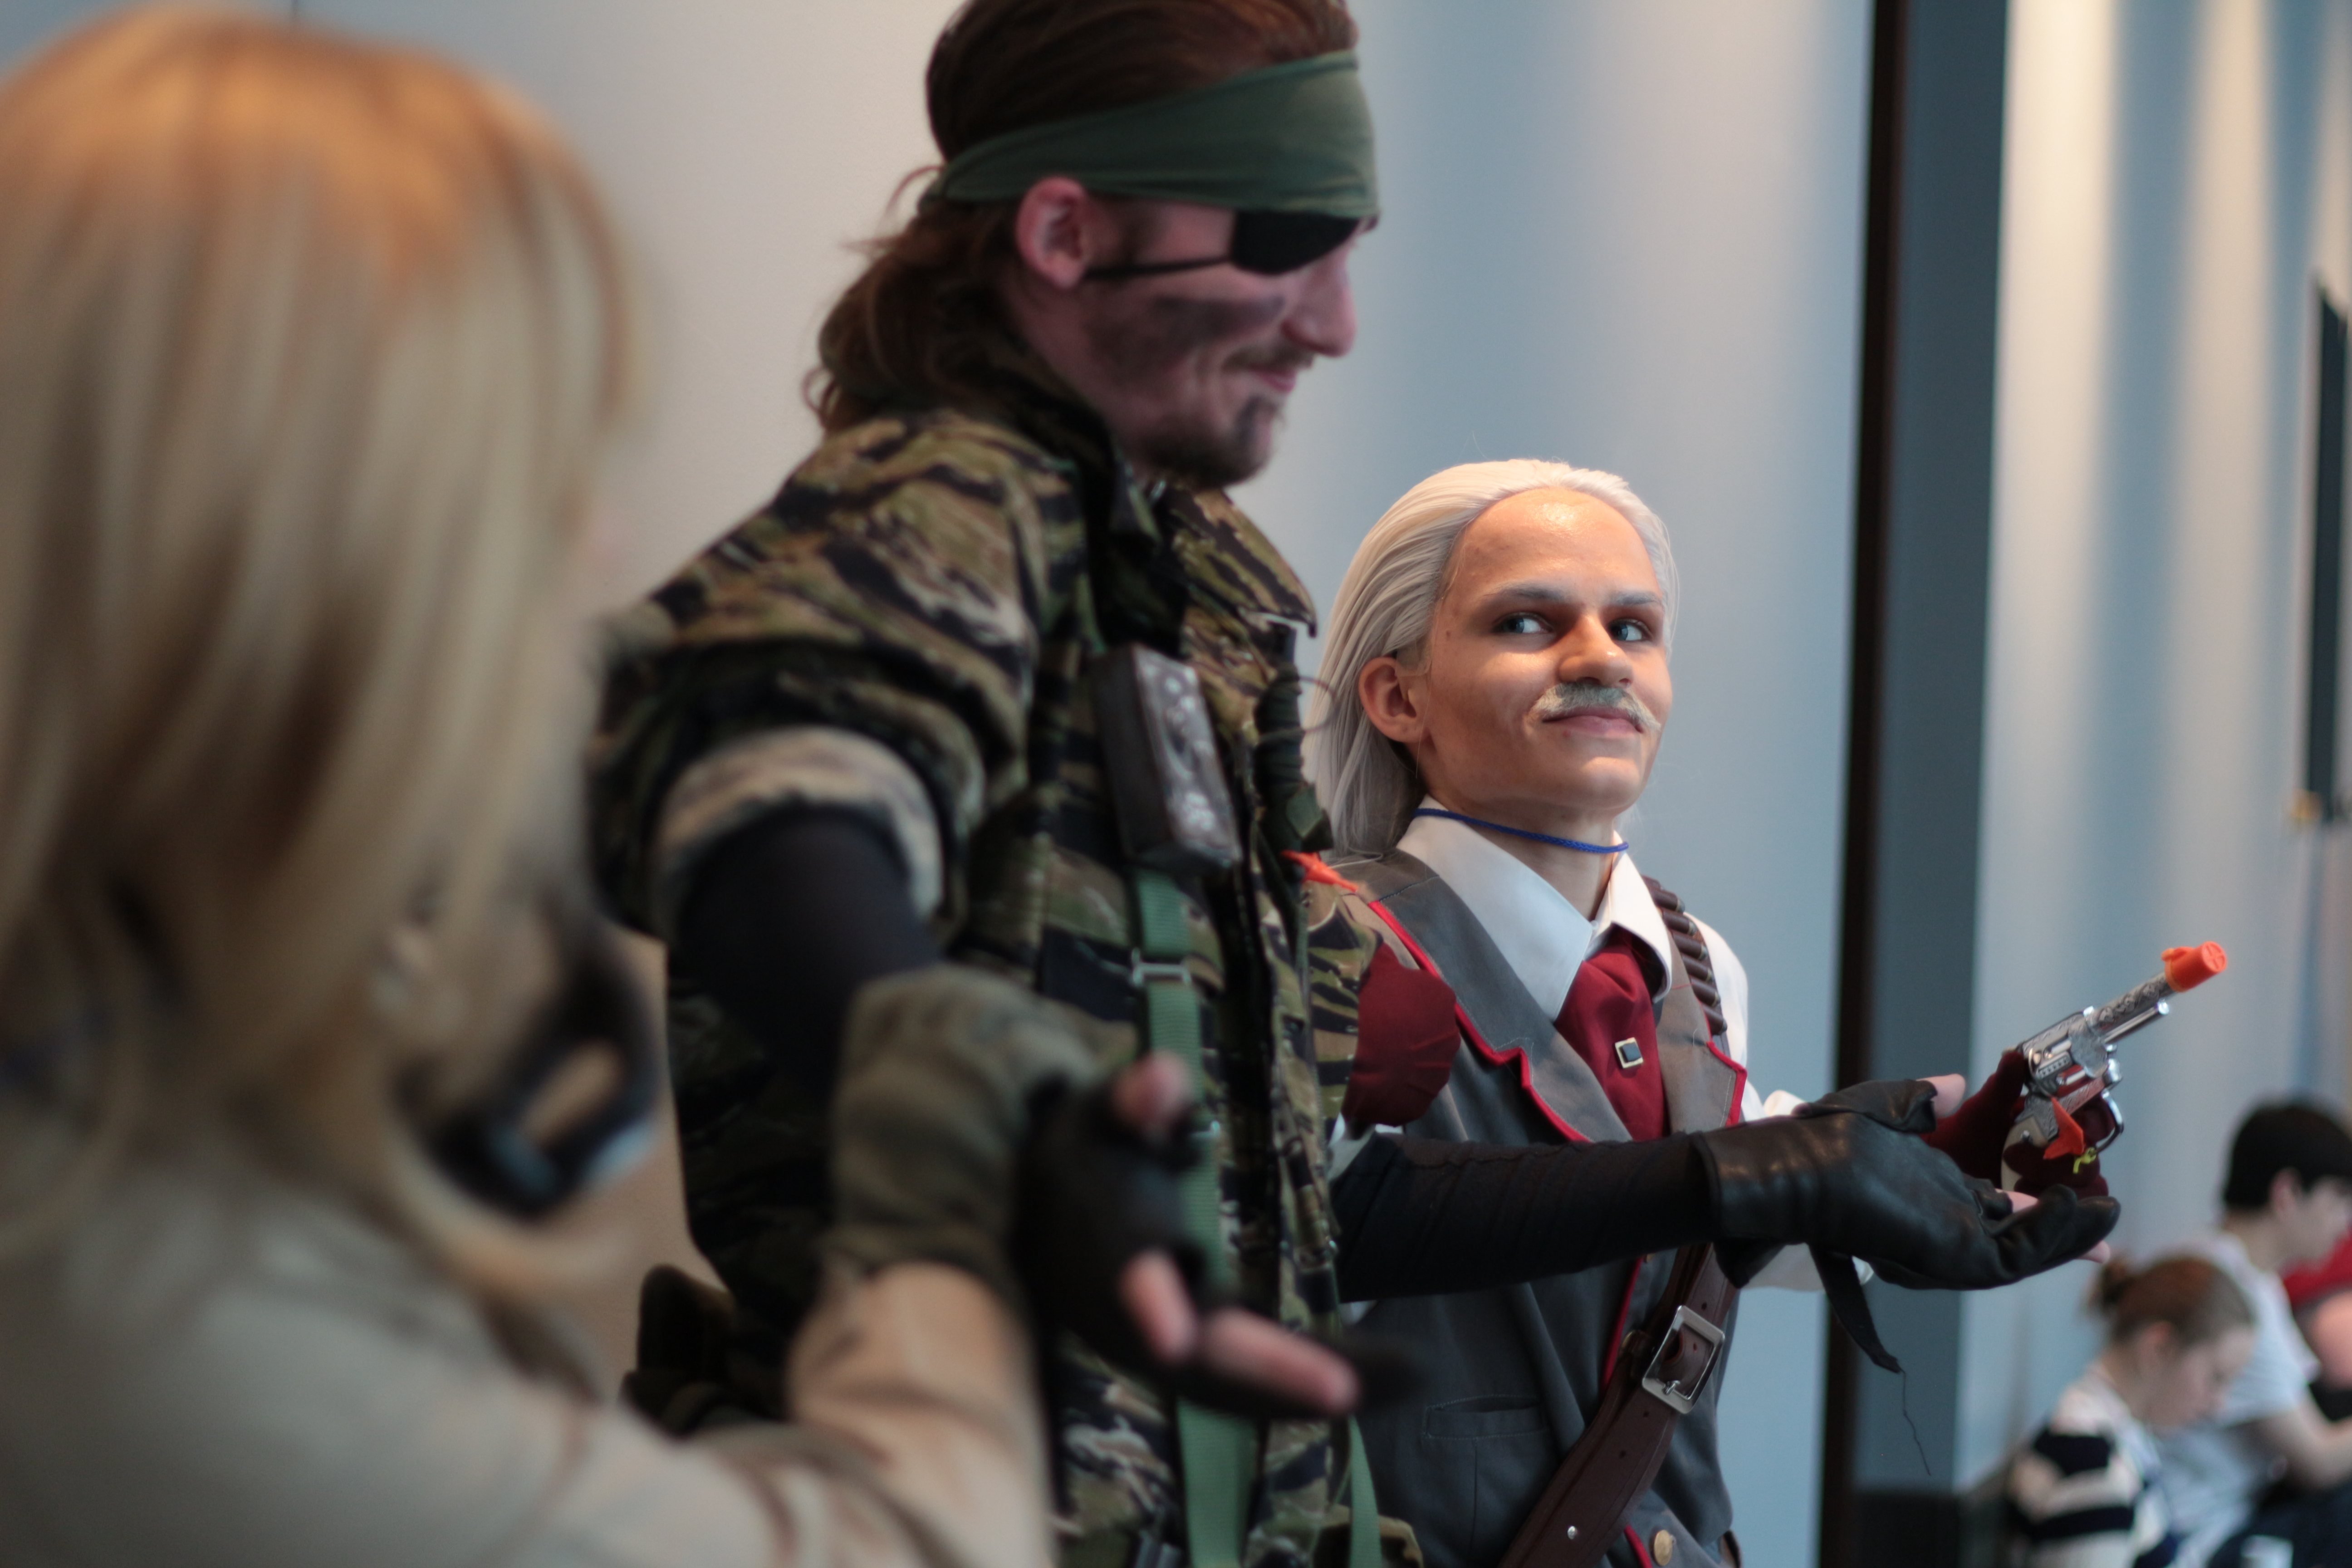 Anime Boston 2013 - Metal Gear Solid Photoshoot 71 by VideoGameStupid